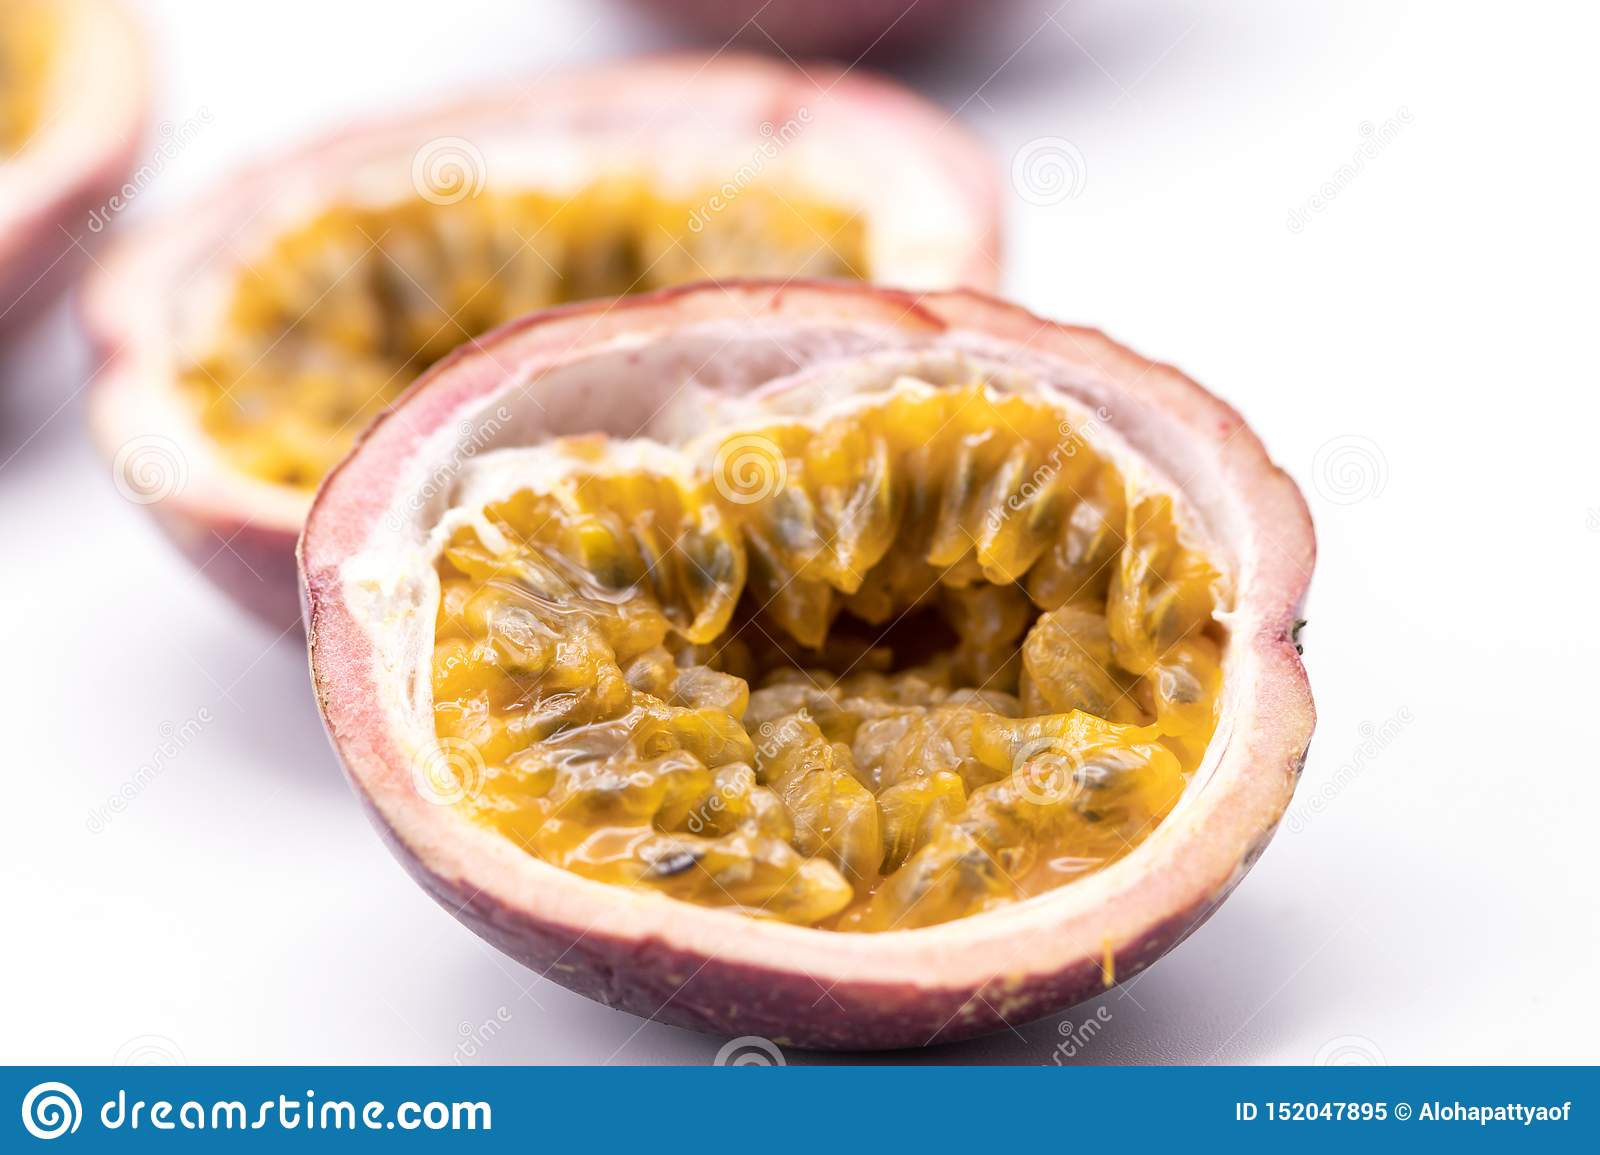 Passion fruits isolate on white background.Passion fruit is a flowering tropical vine.